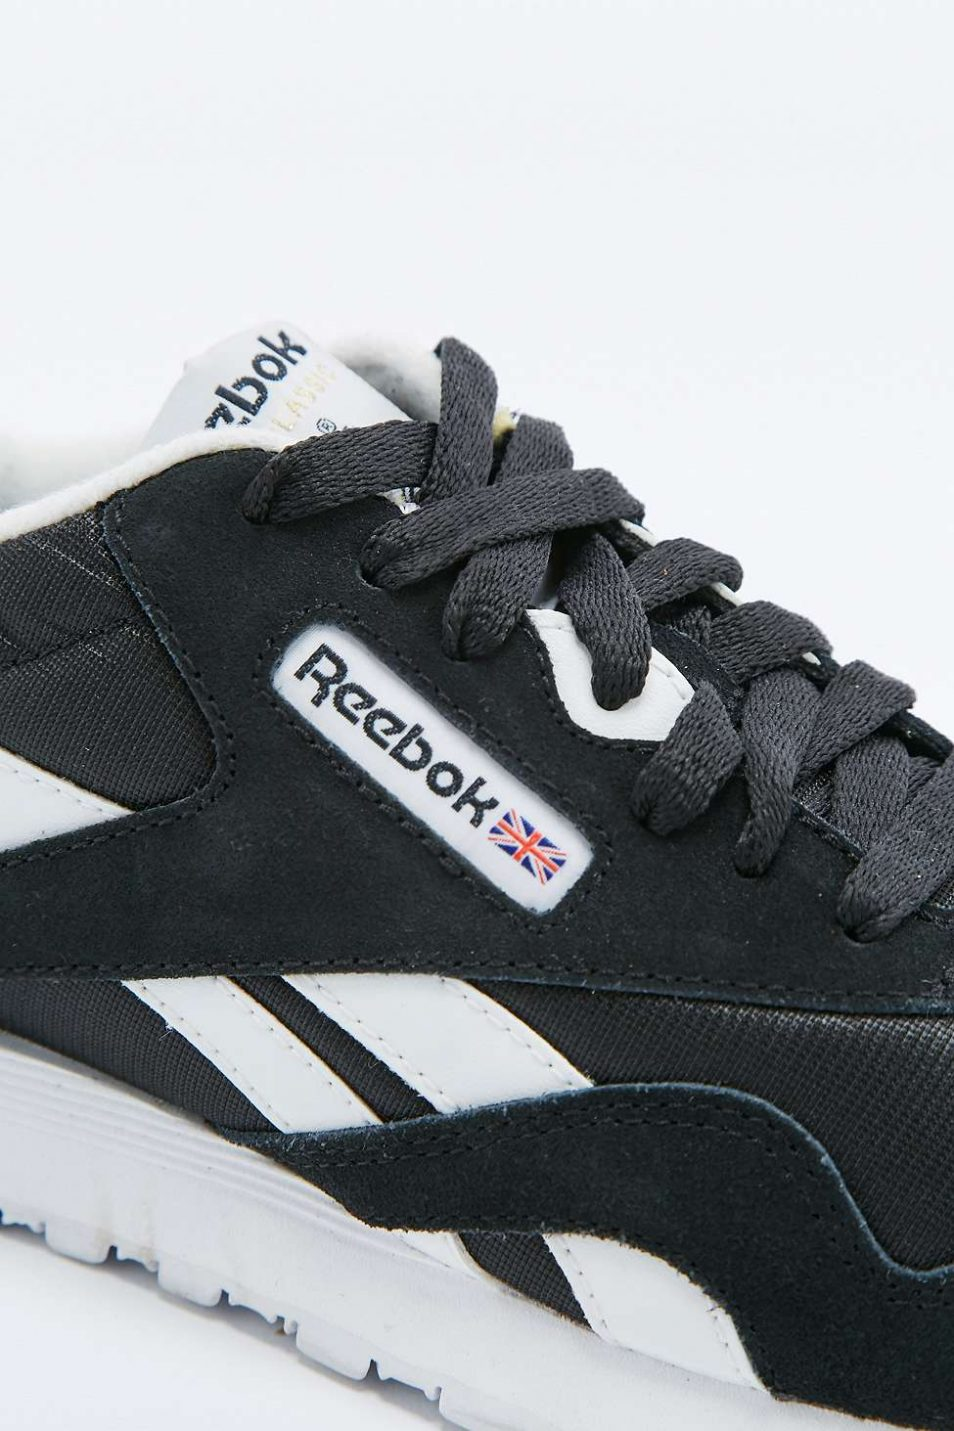 Reebok Classic Black and White Trainers 3 1